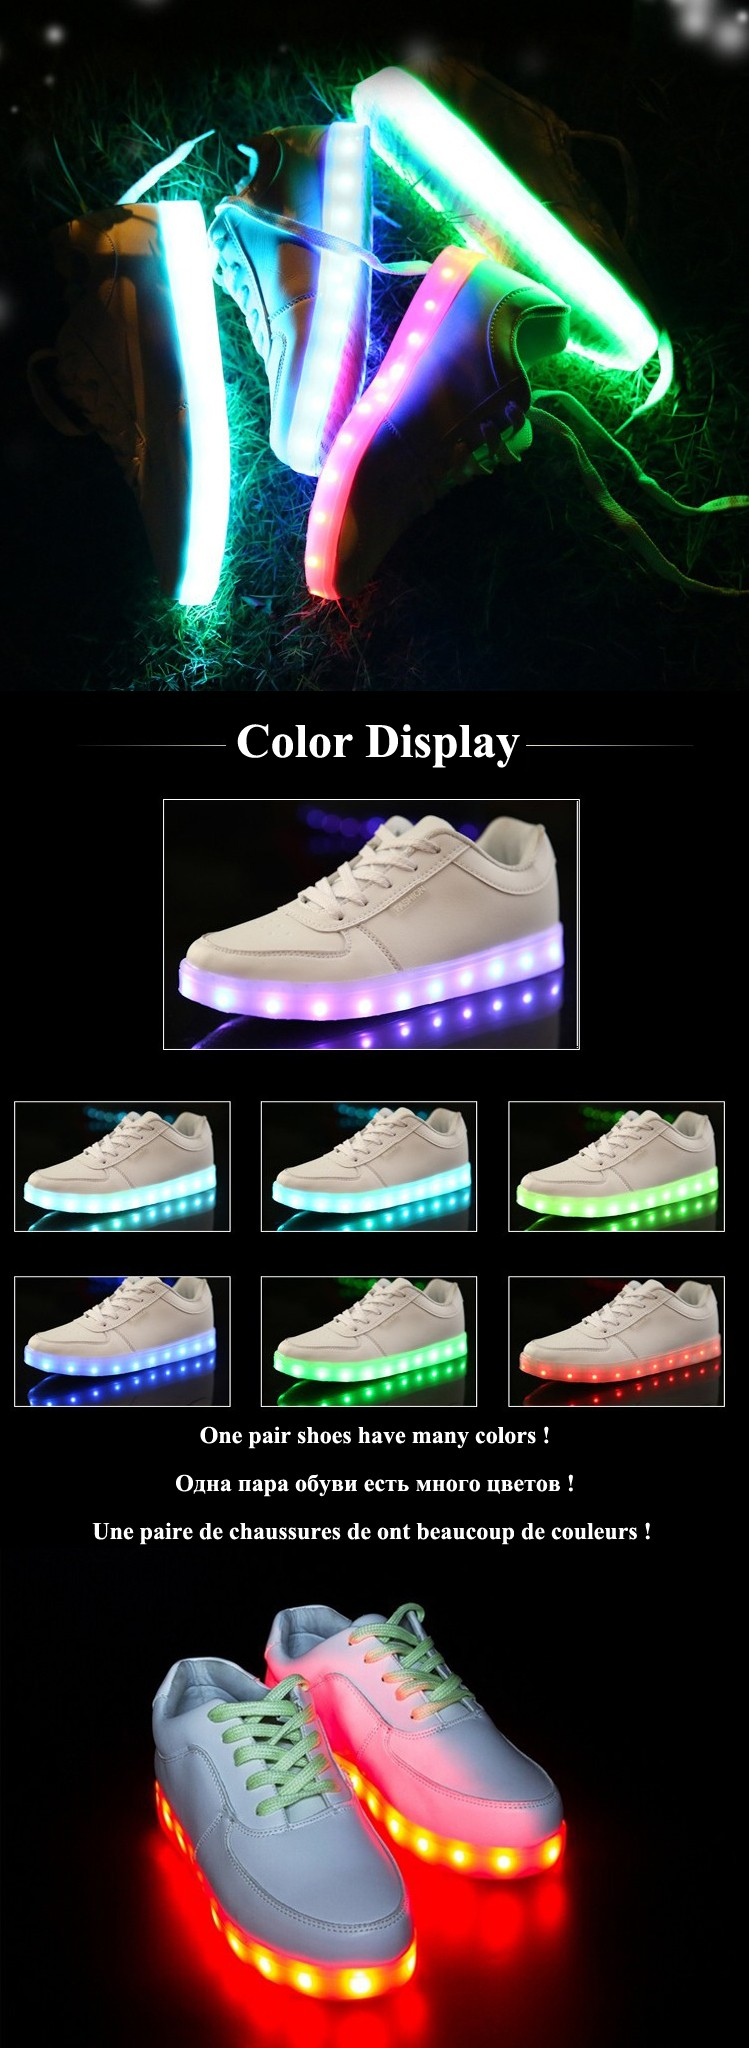 8 Colors Led Shoes for Adults Women Casual ShoesLed luminous Shoes 2015 Hot Fashion Led Light shoes for Men Women Size 35-46